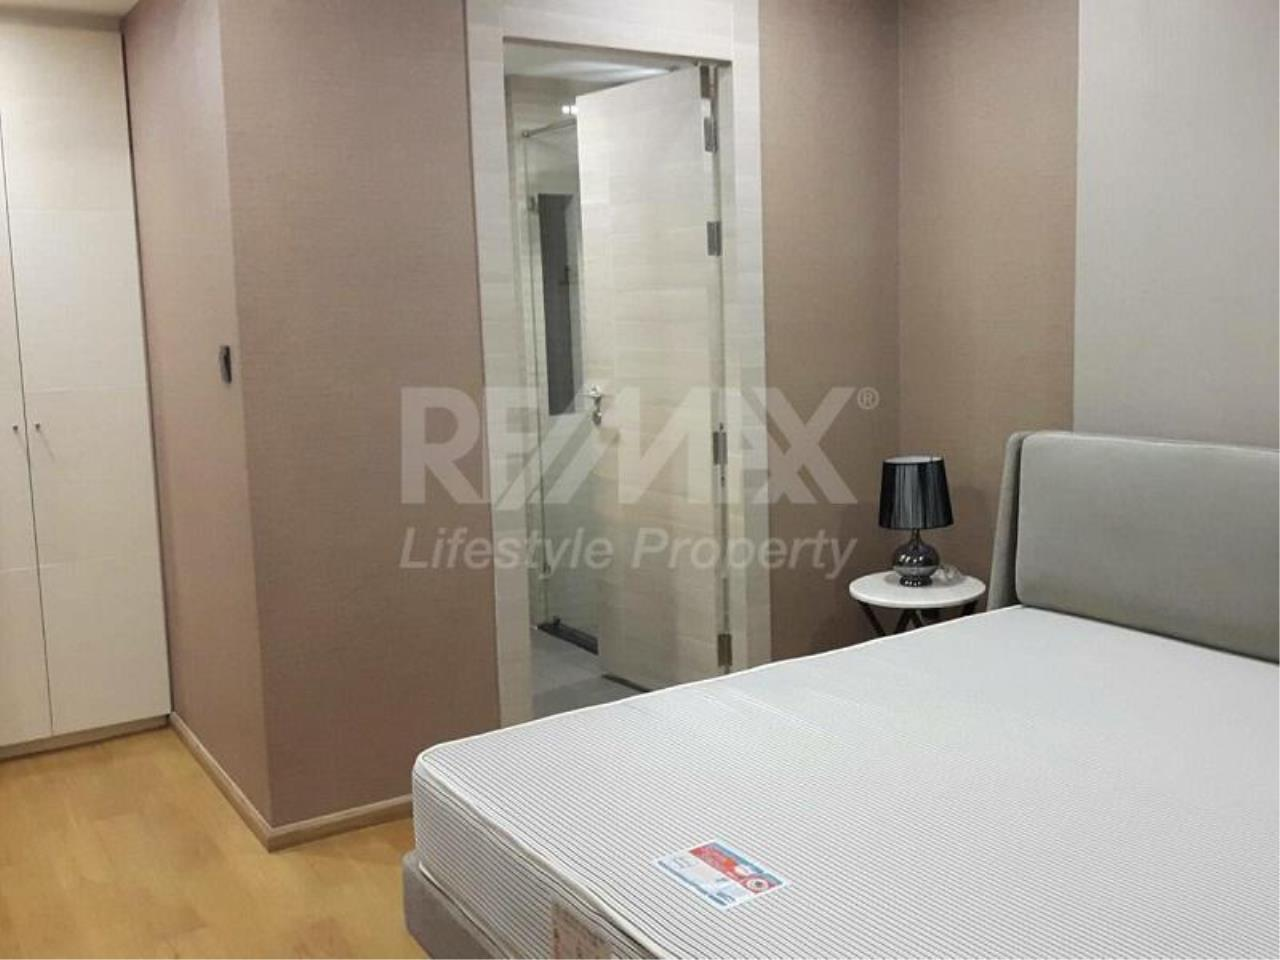 RE/MAX LifeStyle Property Agency's Klass Condo Langsuan 3